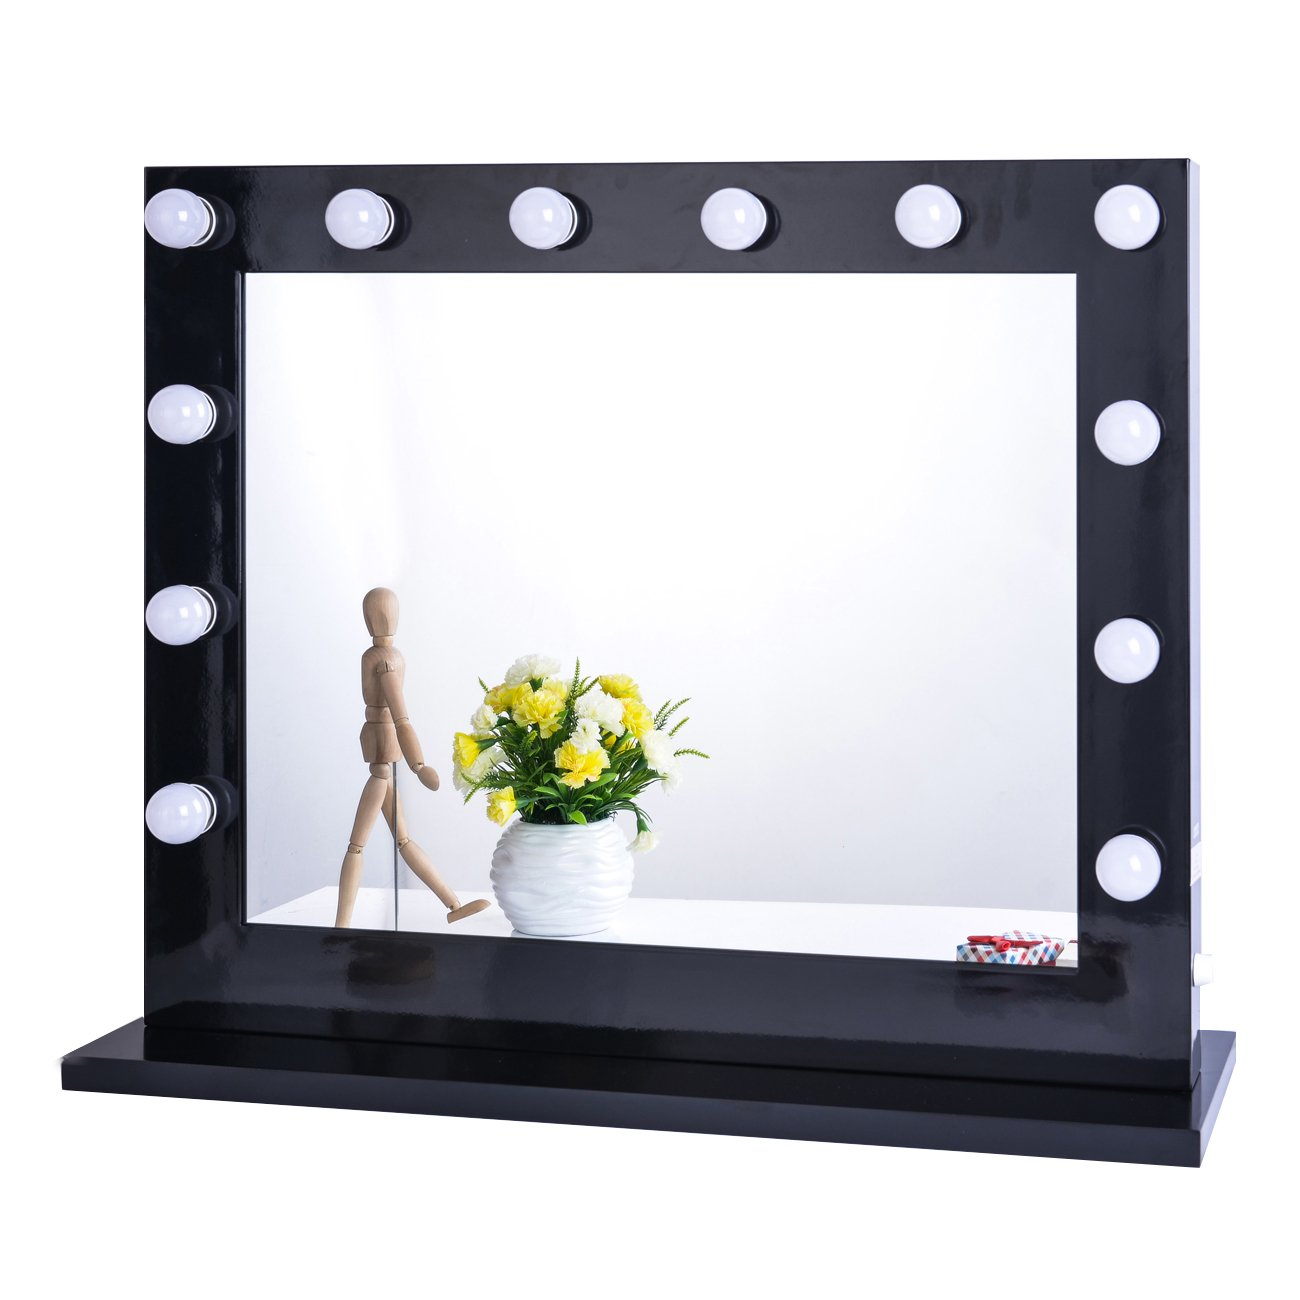 Chende Black Hollywood Lighted Makeup Vanity Mirror Light